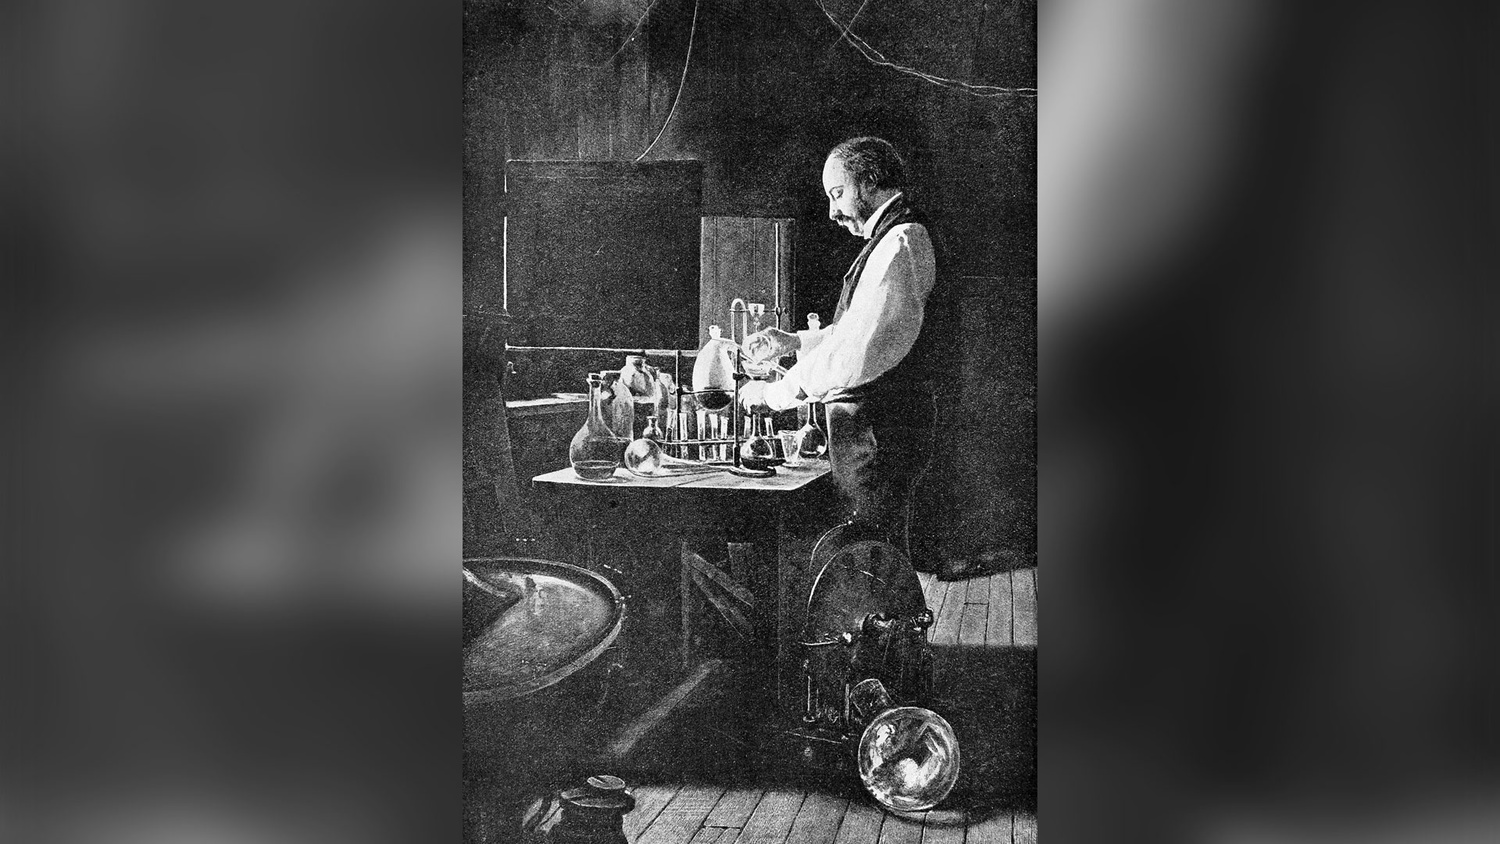 Lord Rayleigh working in his laboratory